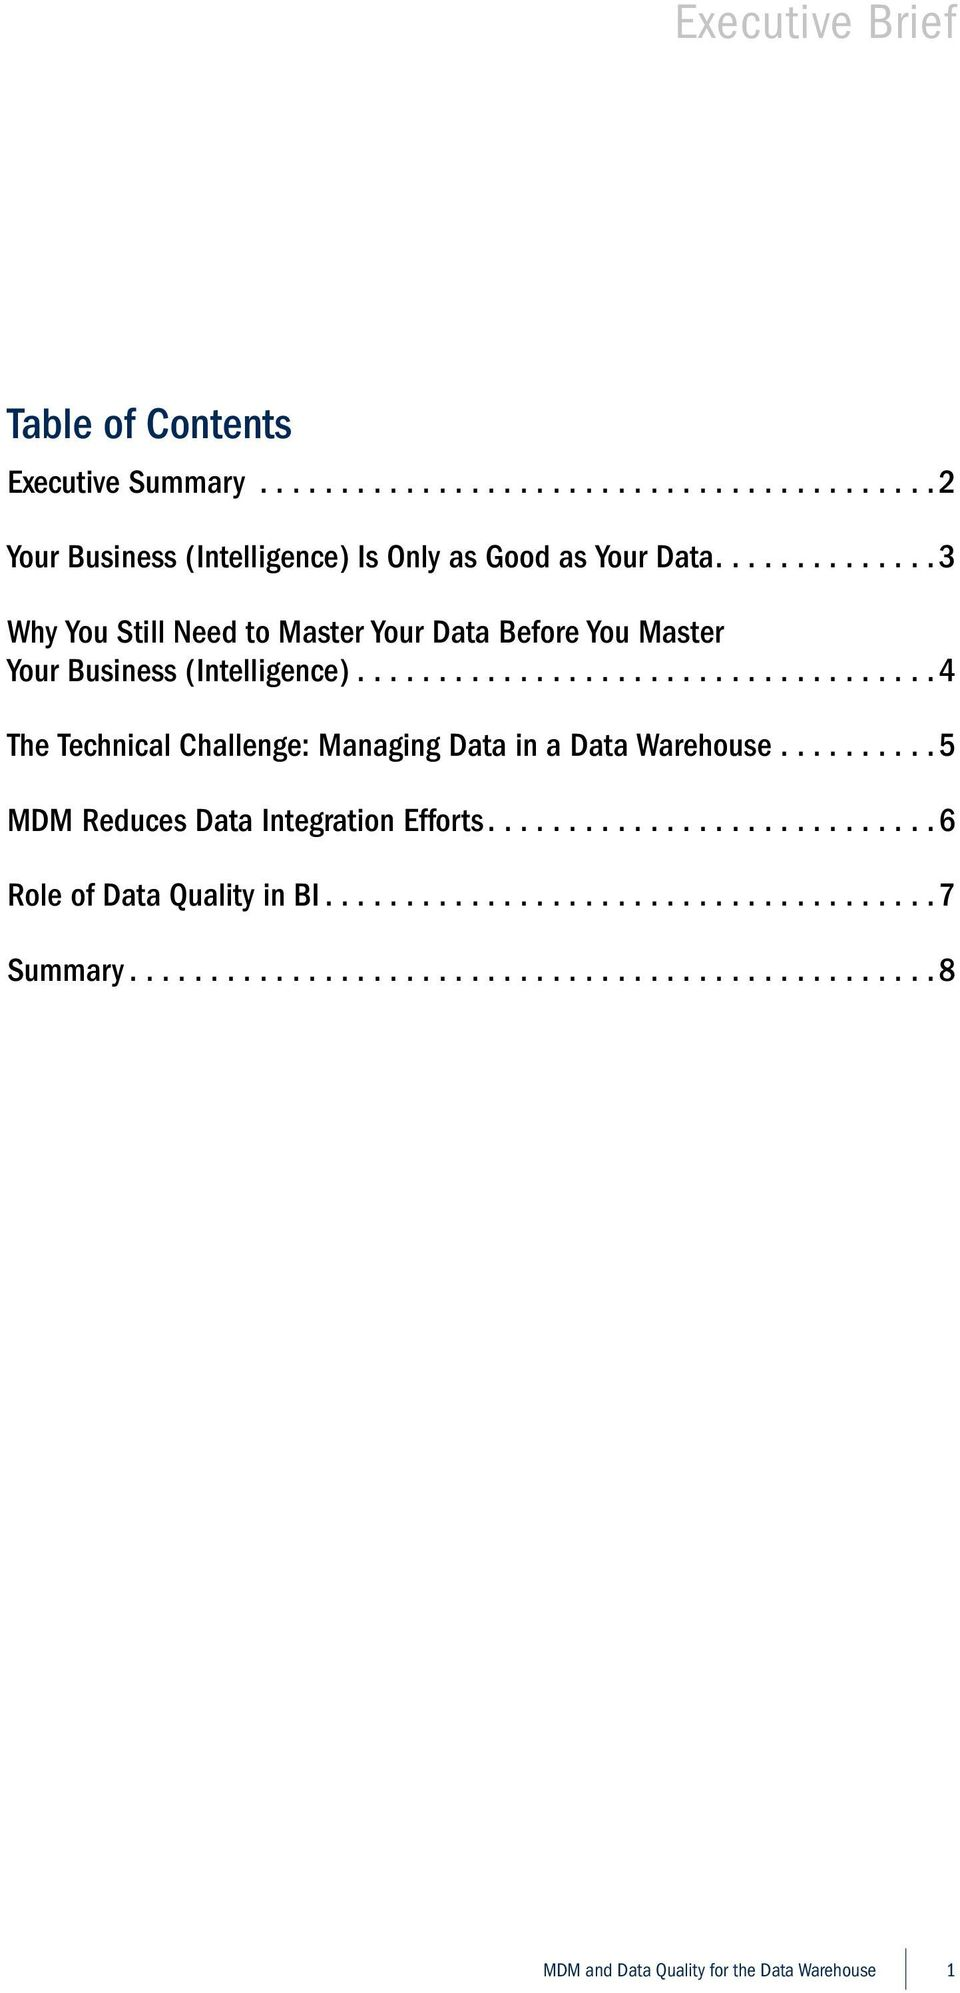 ... 3 Why You Still Need to Master Your Data Before You Master Your Business (Intelligence).